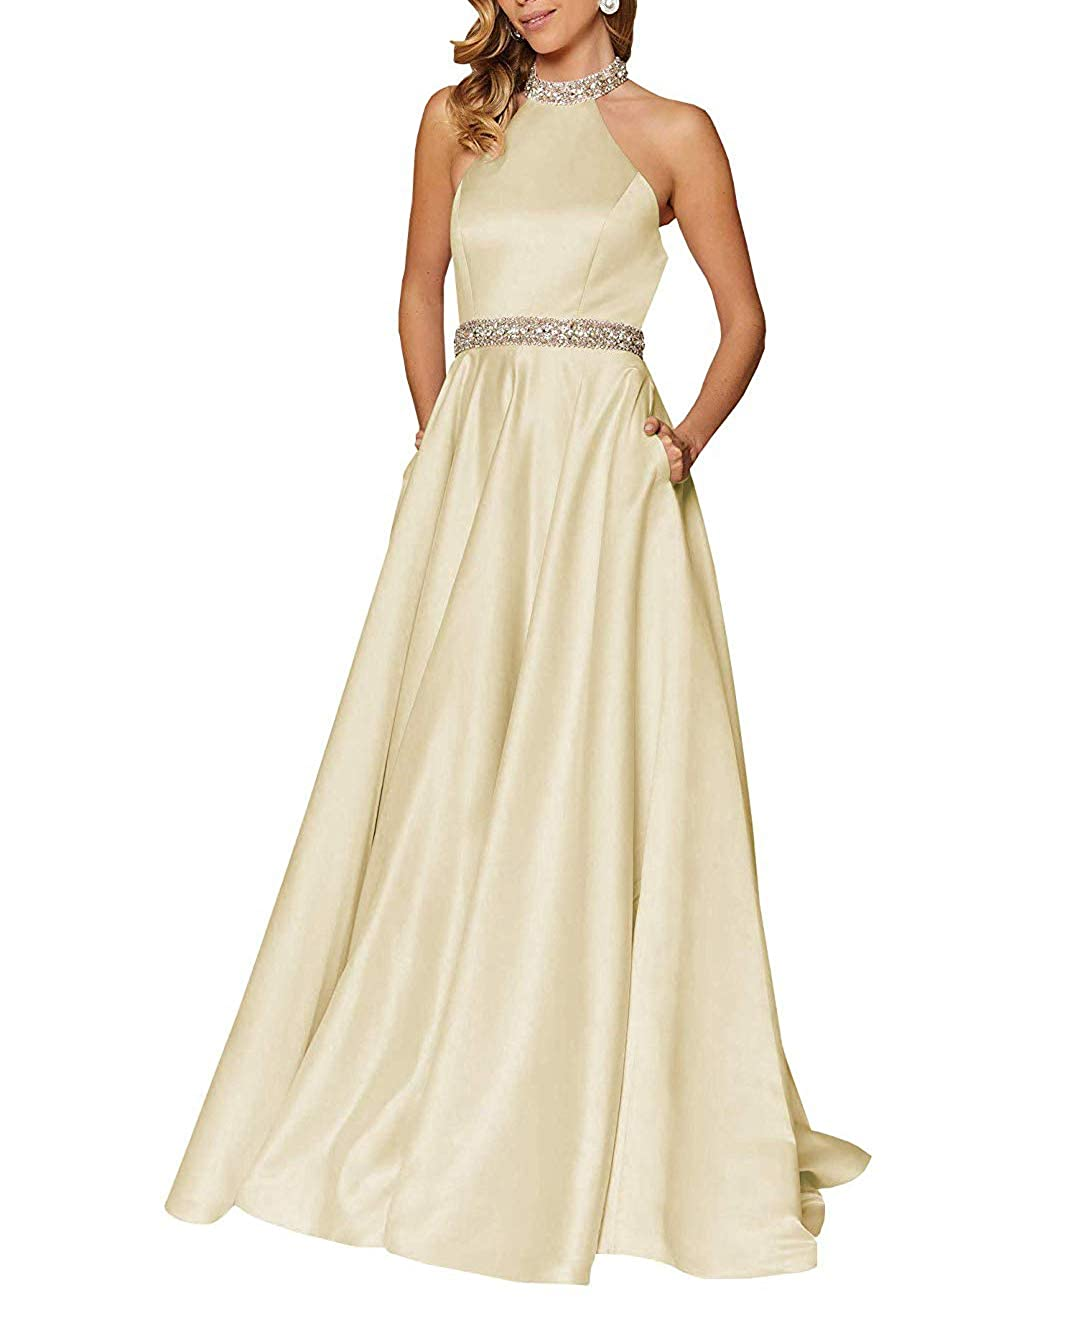 gold RTTUTED Satin Beaded Long Prom Gown with Pockets for Formal Wedding Dress Evening